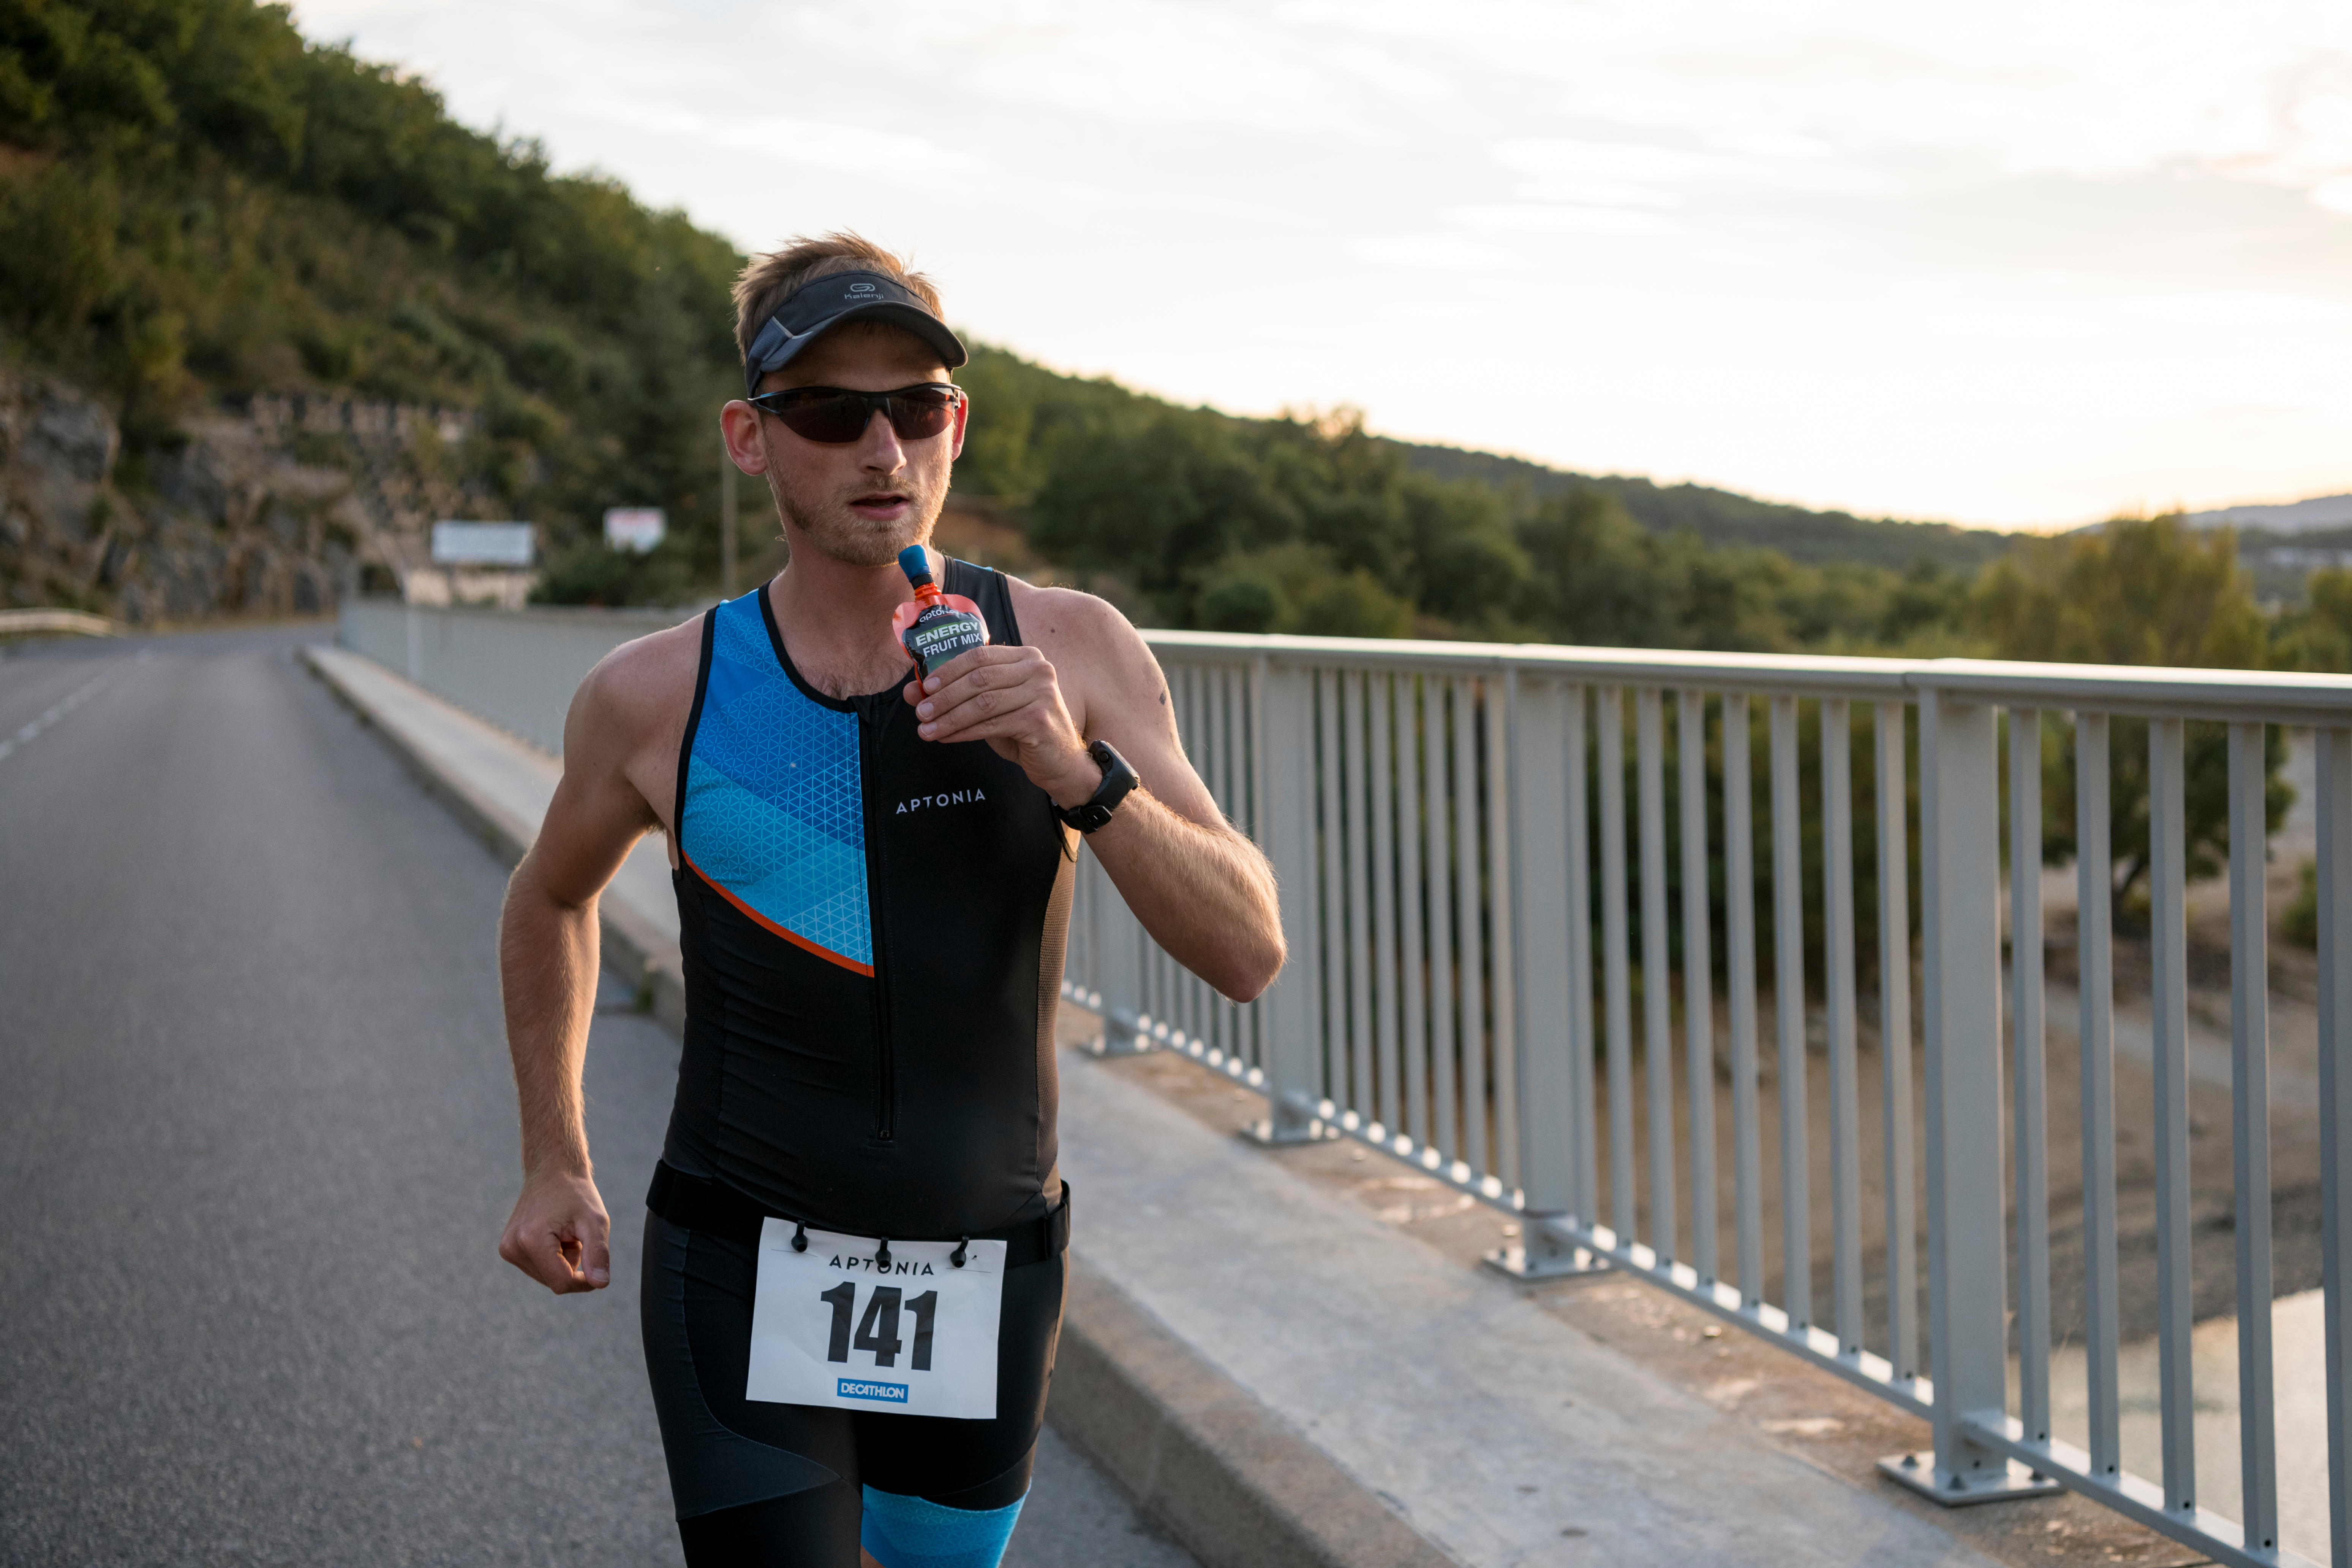 Race Day Strategy to manage your race